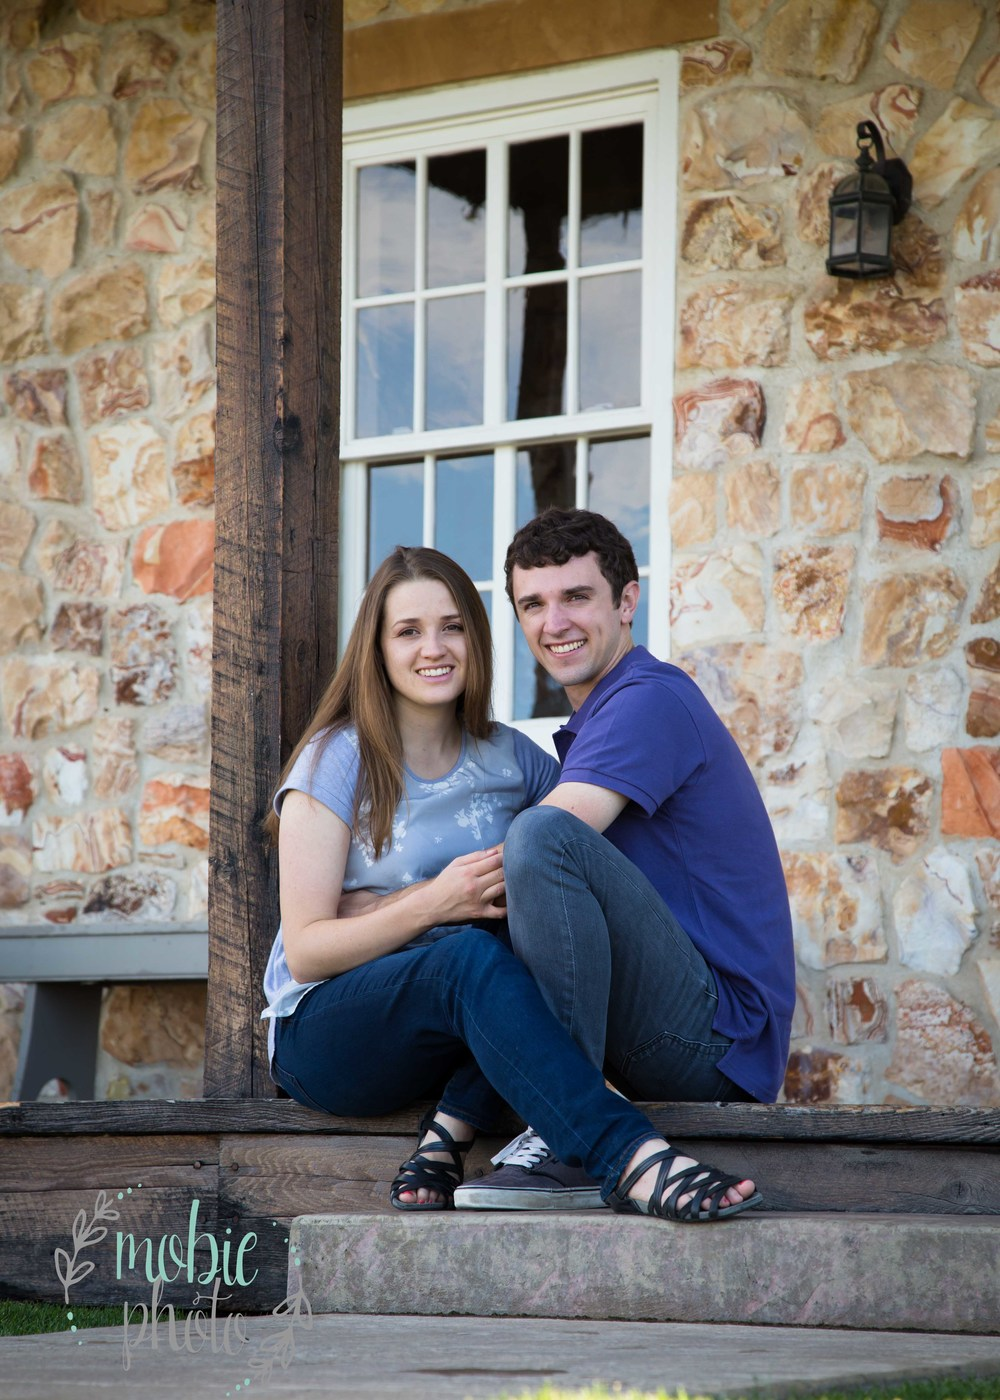 This Is The Place Heritage Park Engagement Photography Session by Mobie Photo